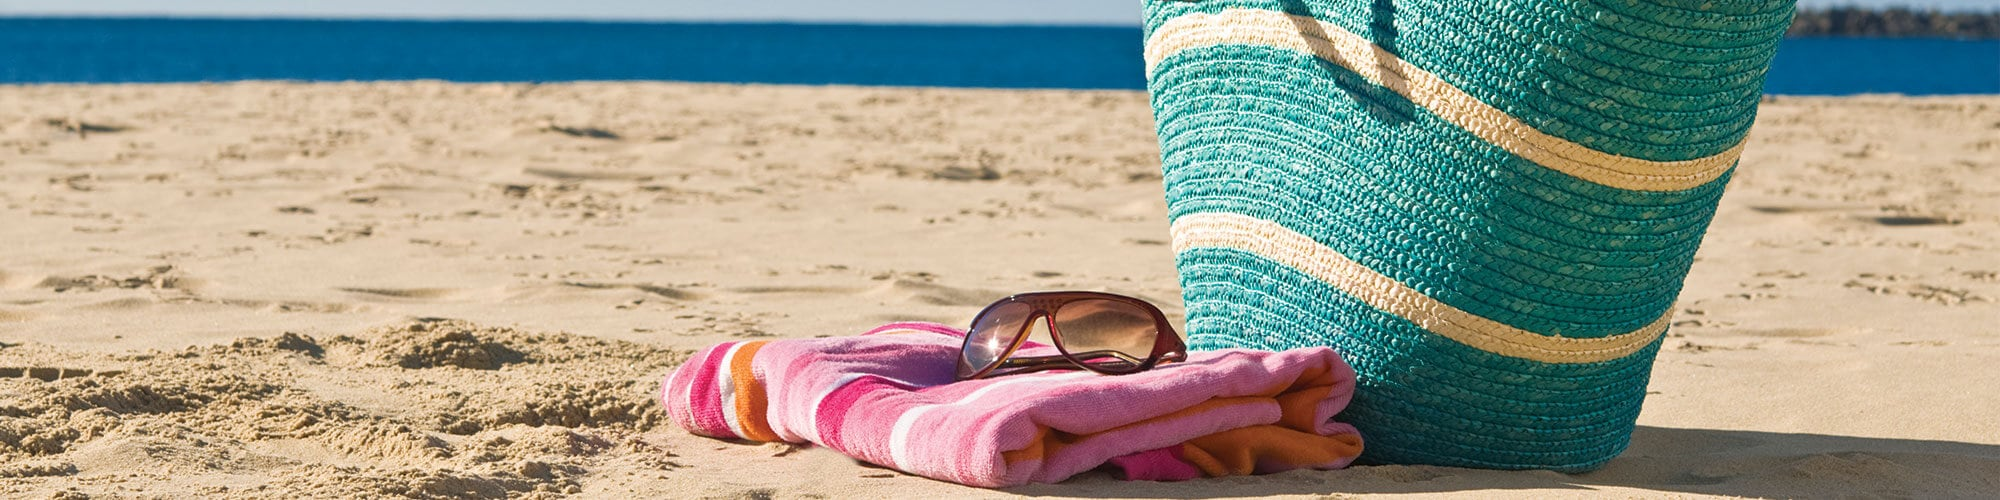 Blue striped beach tote with sunglasses, a towel, straw sun hat, and sandals on the beach